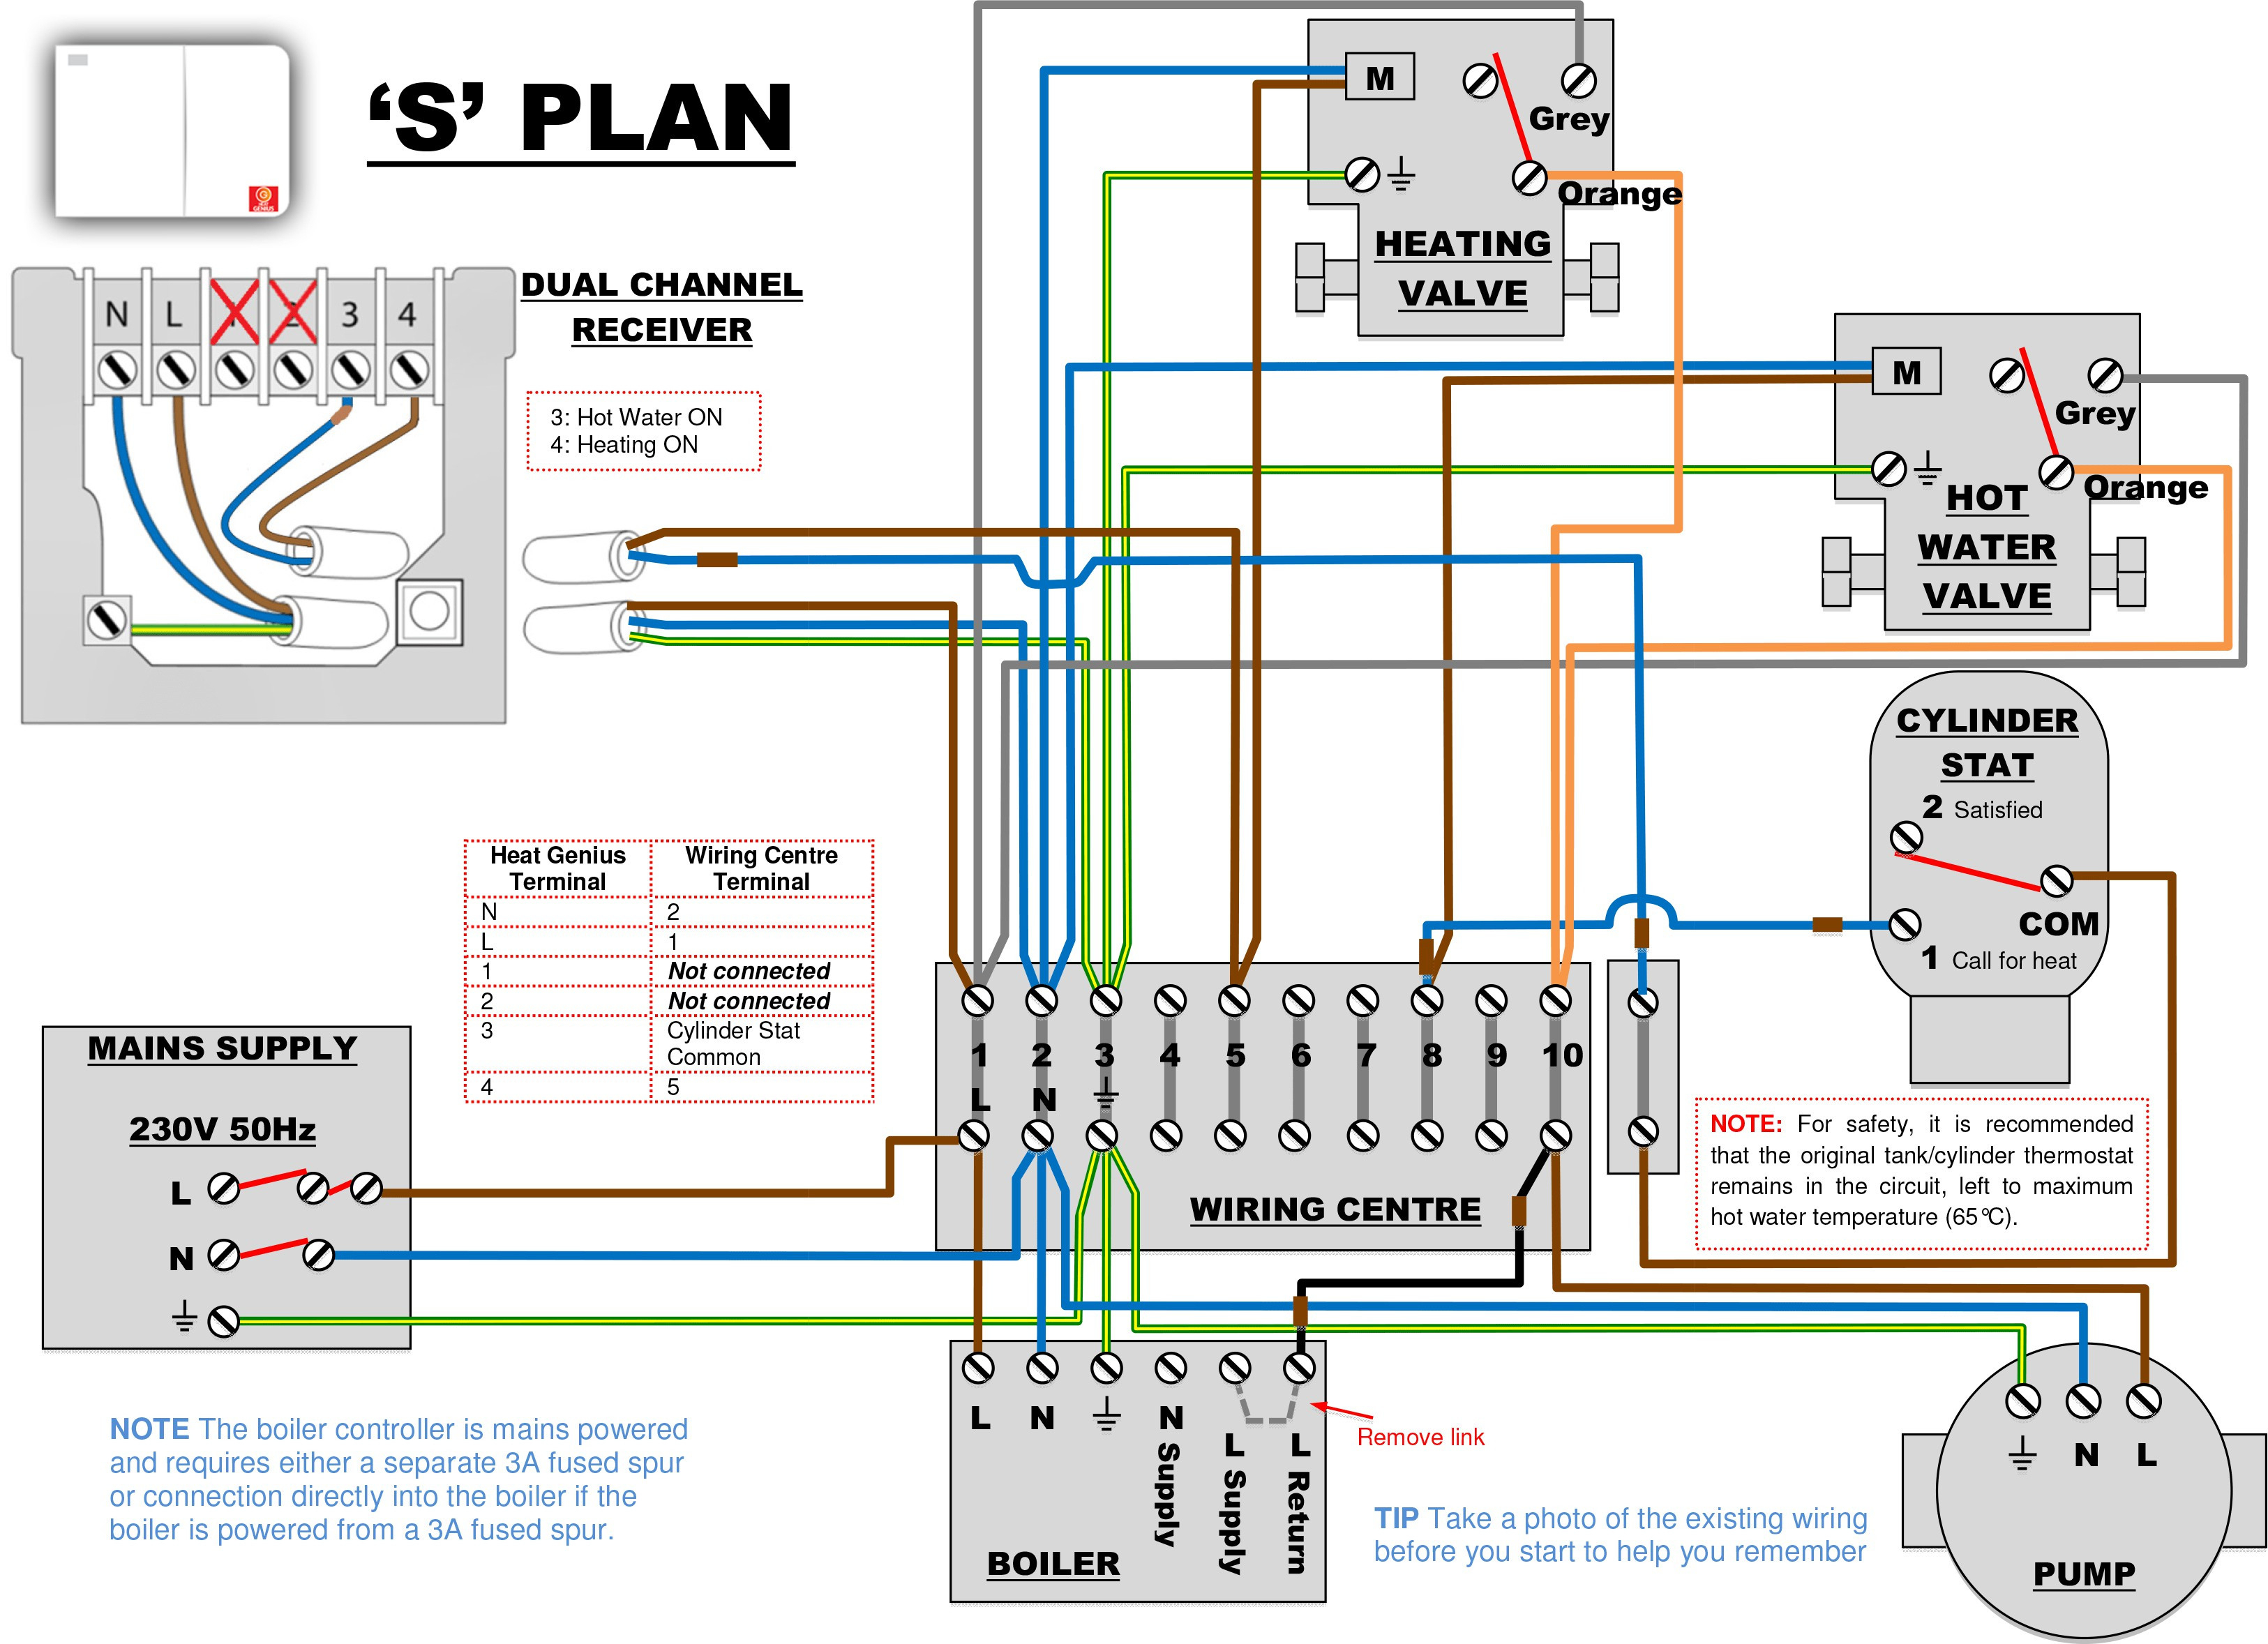 Wiring Diagram For The Nest Thermostat Sample - Standard Nest Wiring Diagram